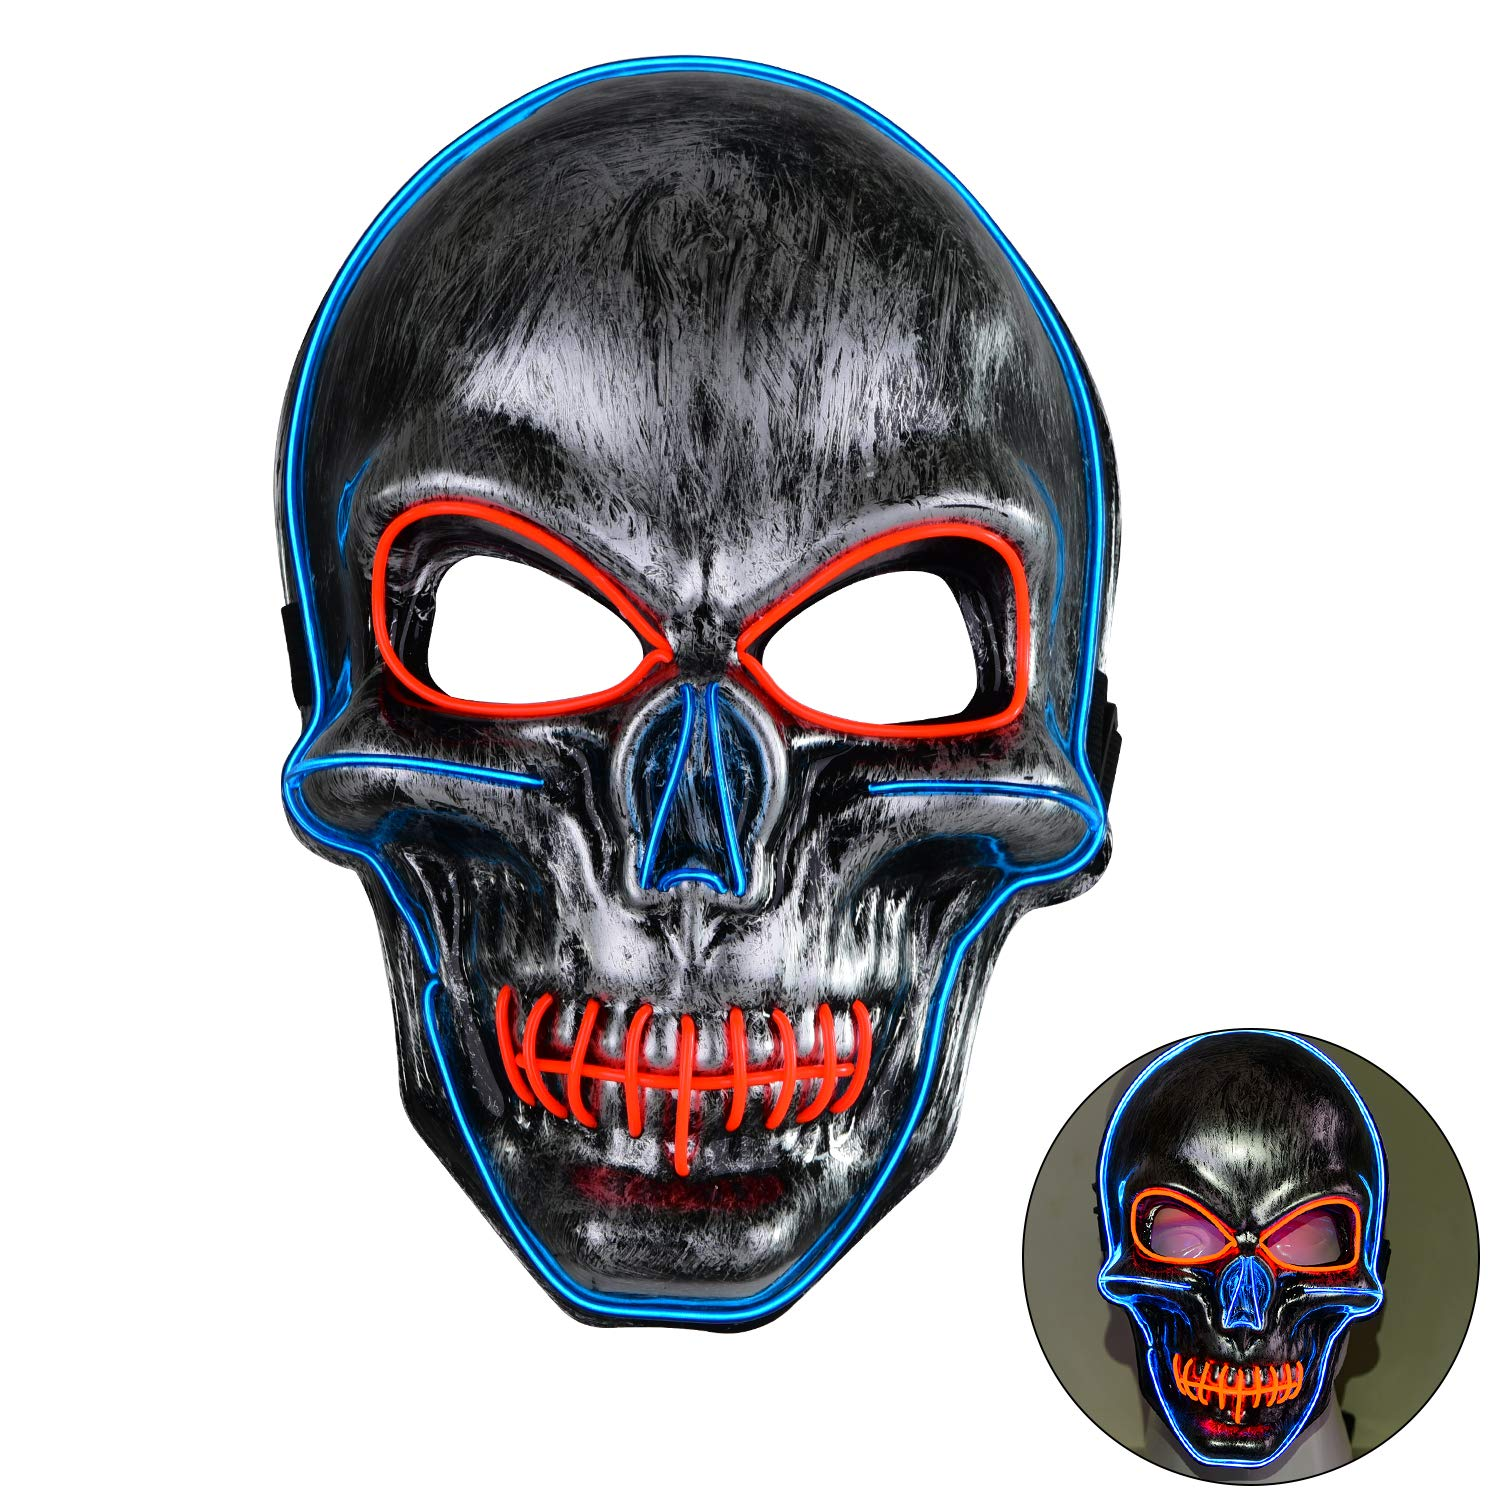 Great LED Light-Up Skull Mask for Halloween, Cosplay, Raves, etc. (Blue and Red)